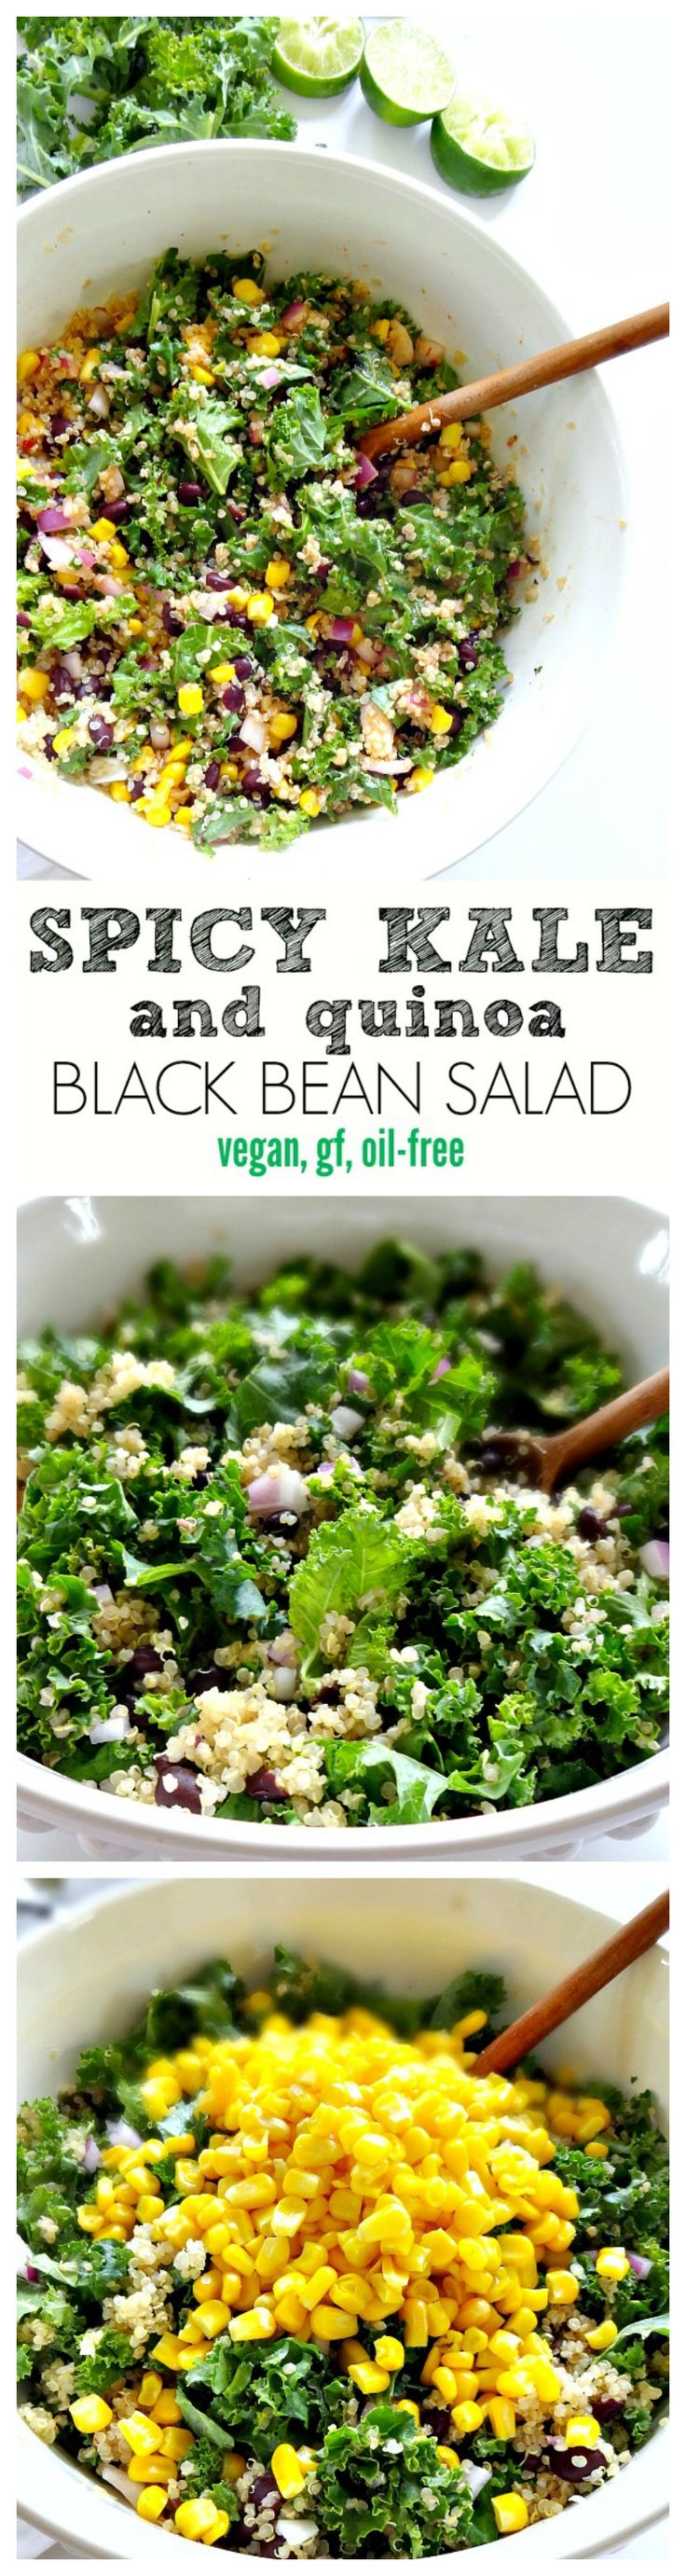 Salad Recipe: Spicy Kale & Quinoa Black Bean Salad #vegan #recipes #healthy #plantbased #glutenfree #whatveganseat #salad